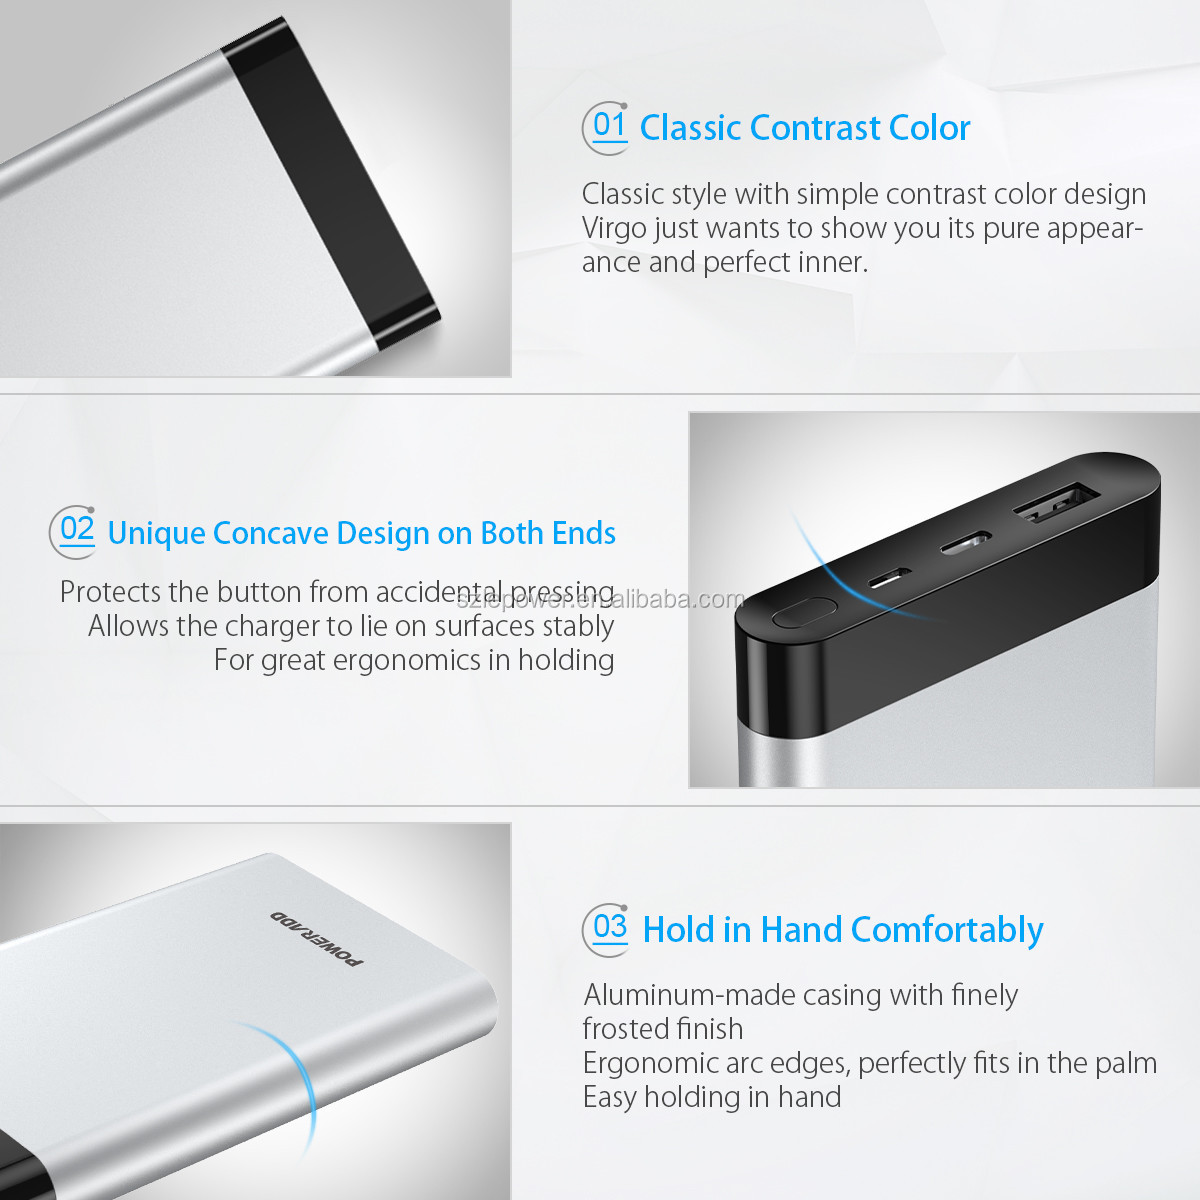 Best Electronic Poweradd Virgo Classic Power Bank 10000mah battery charger